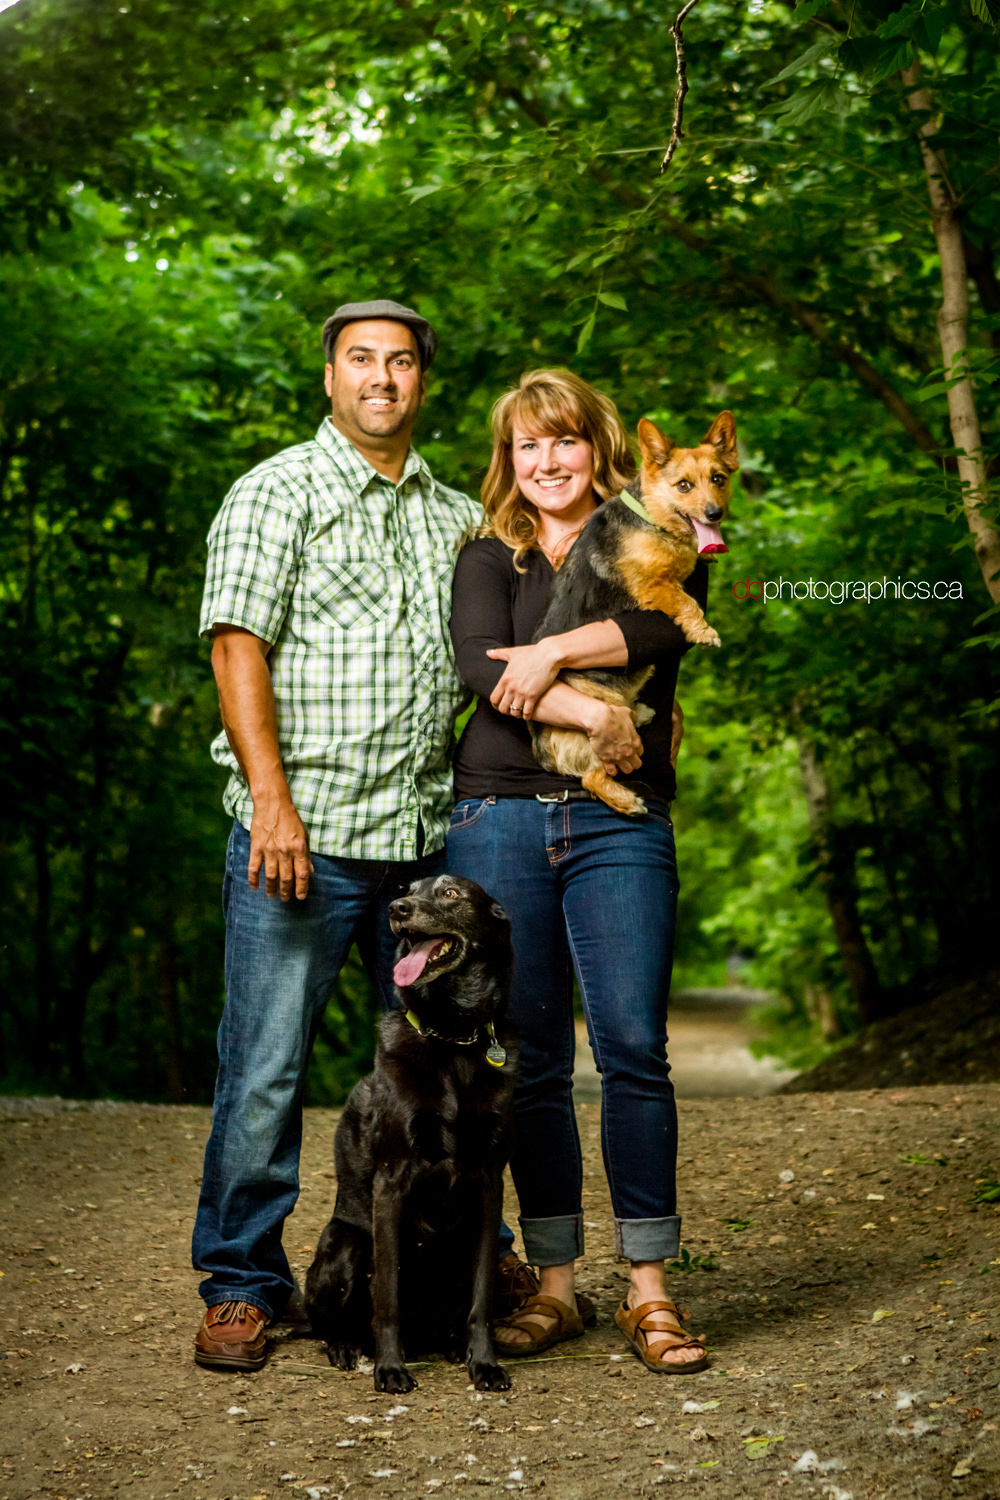 Amy & Ian Engagement Shoot - 20140626 - 0030.jpg